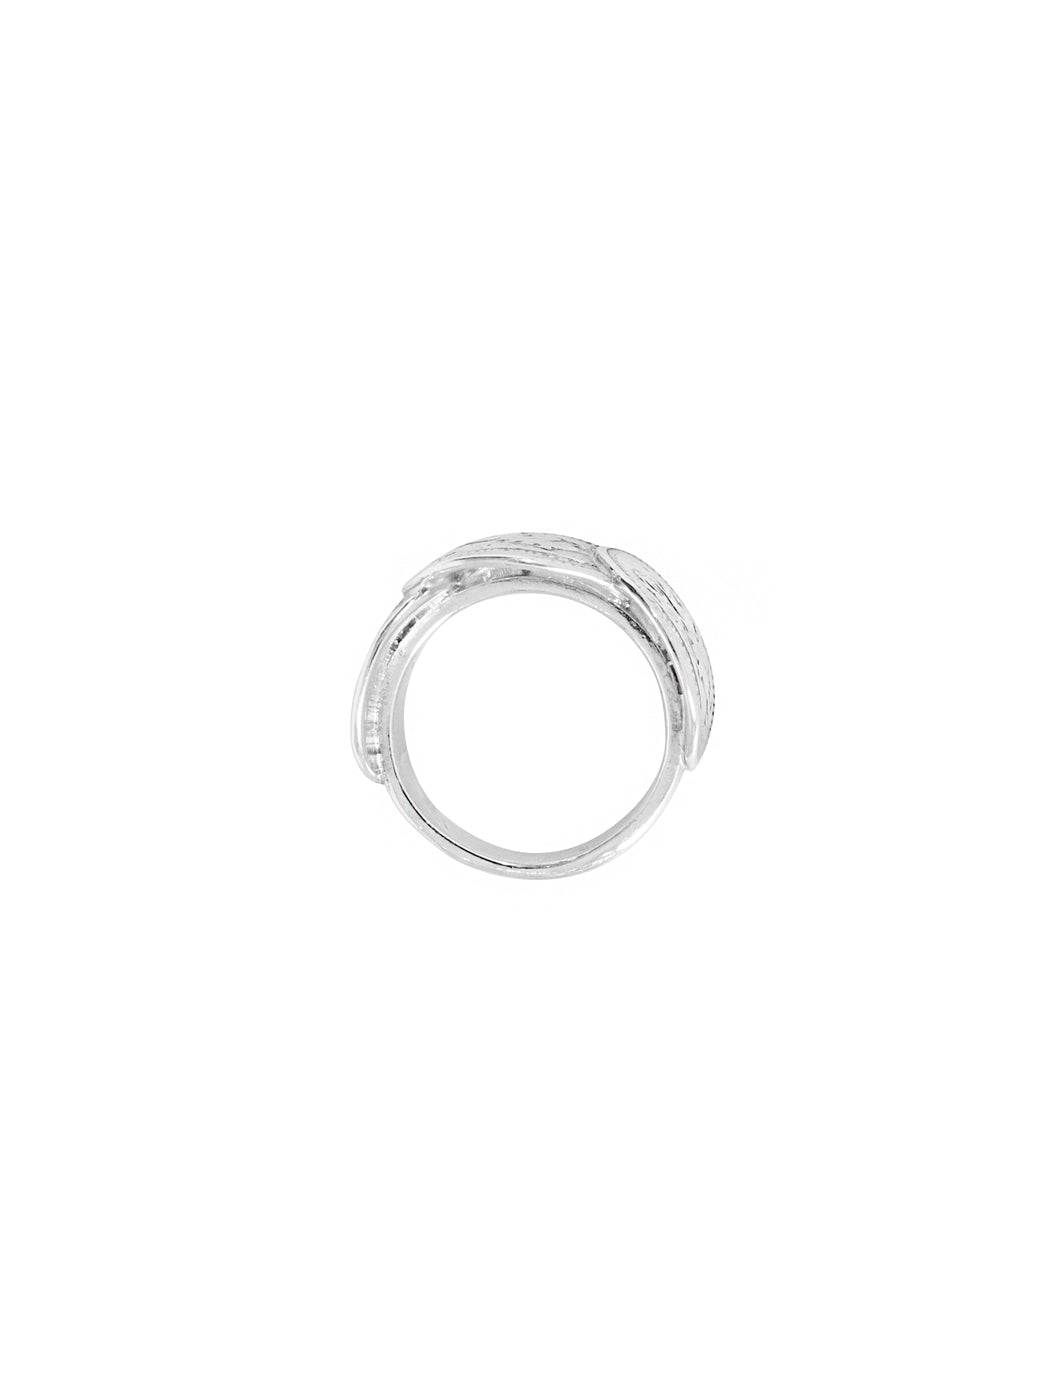 Fiorina Jewellery Men's Saint George Ring Side View